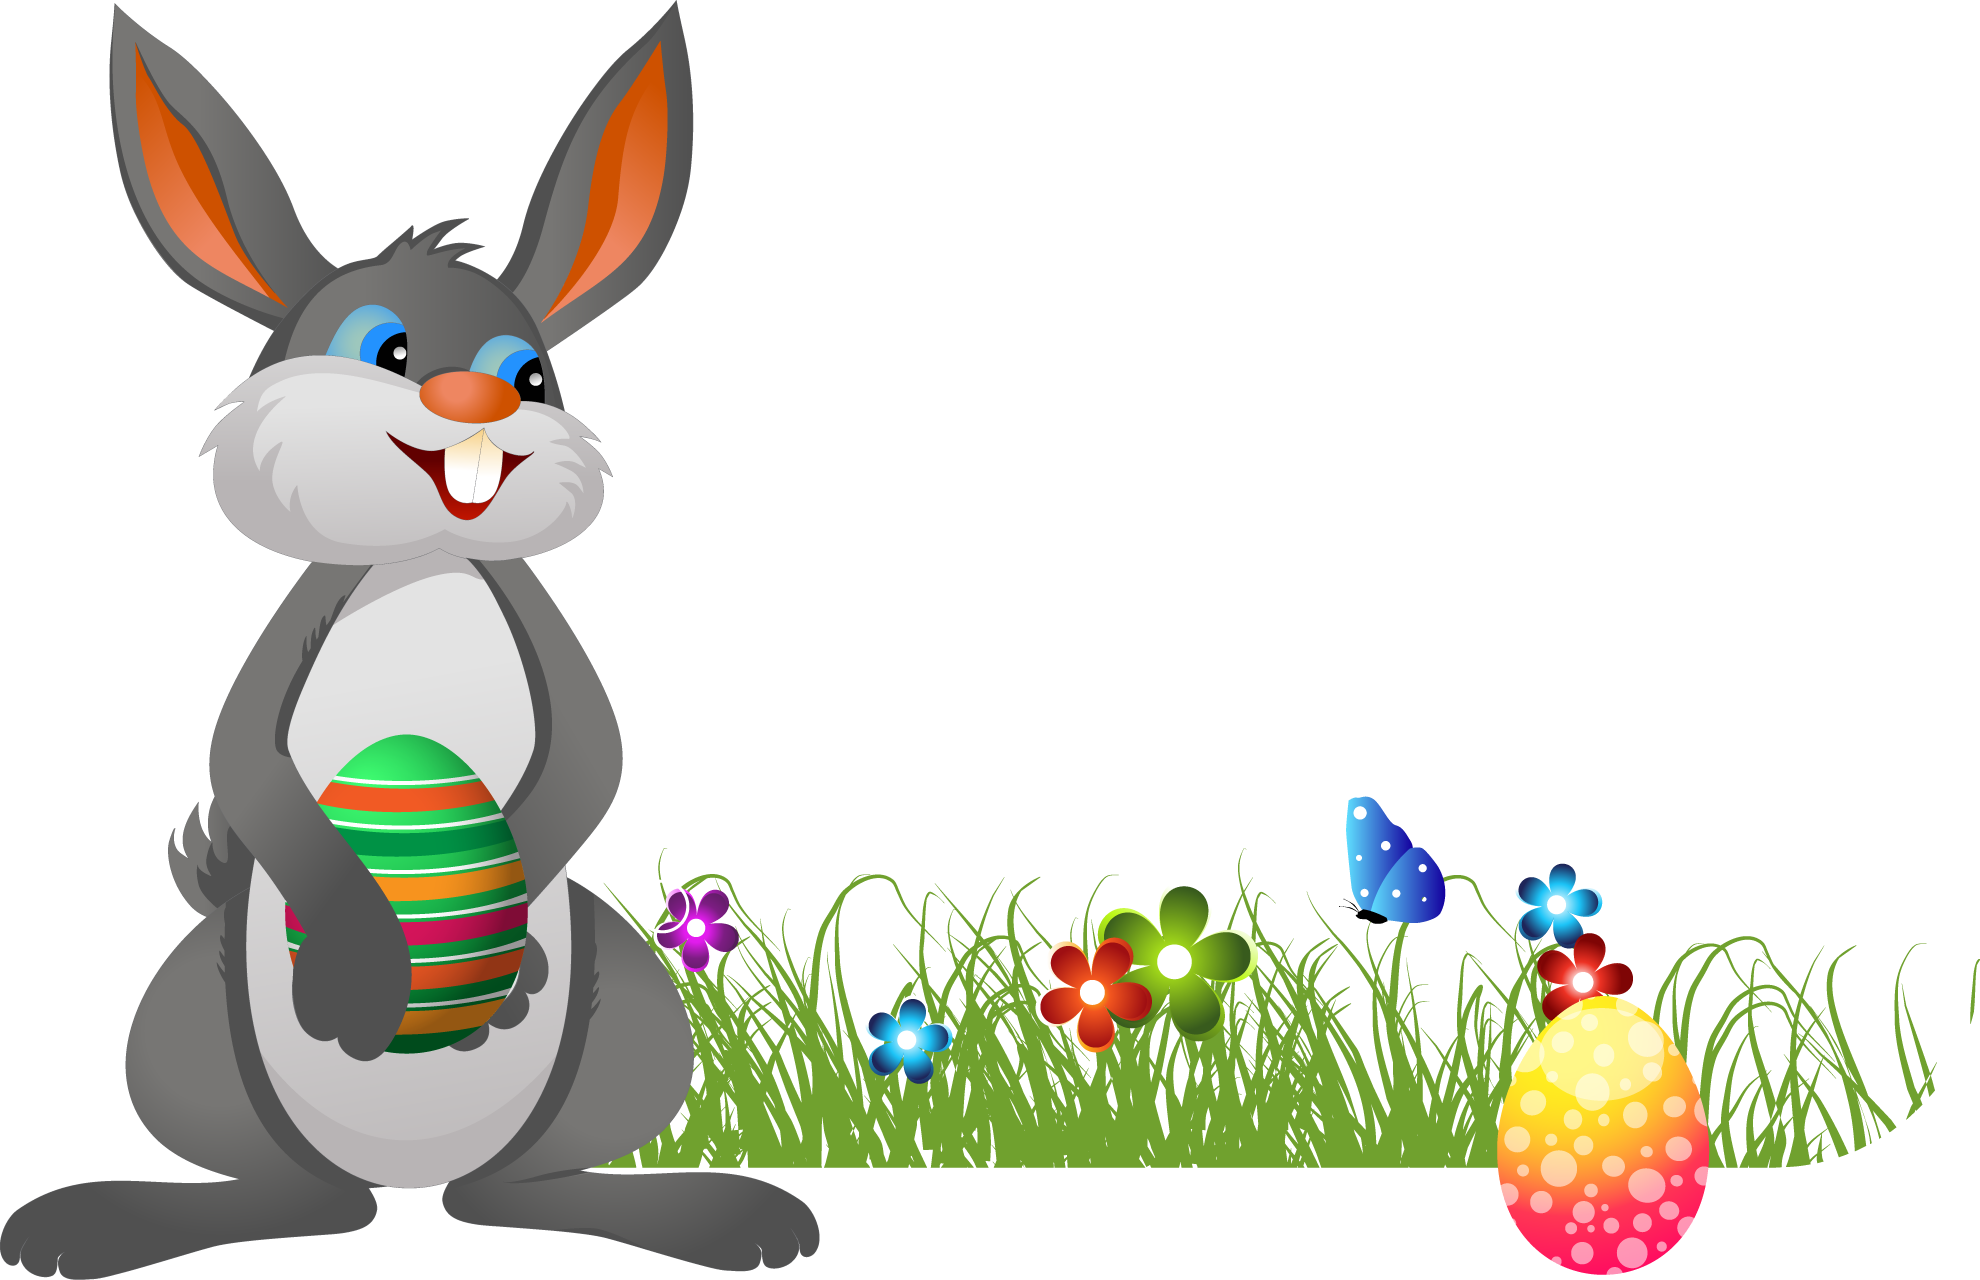 Easter bunny png. Pic mart